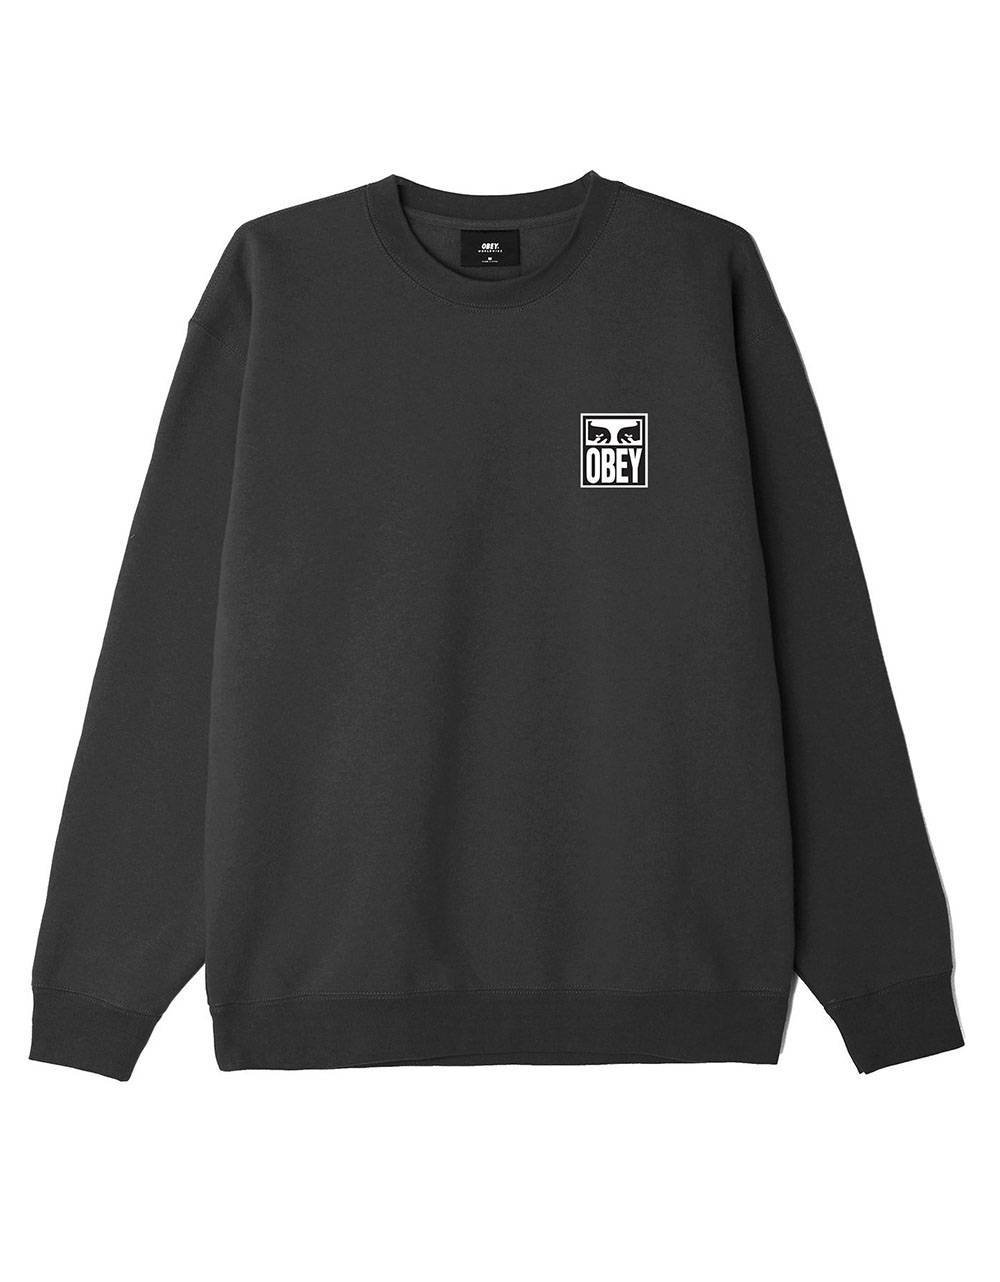 Obey eyes icon II premium crewneck sweater - black obey Sweater 81,15 €